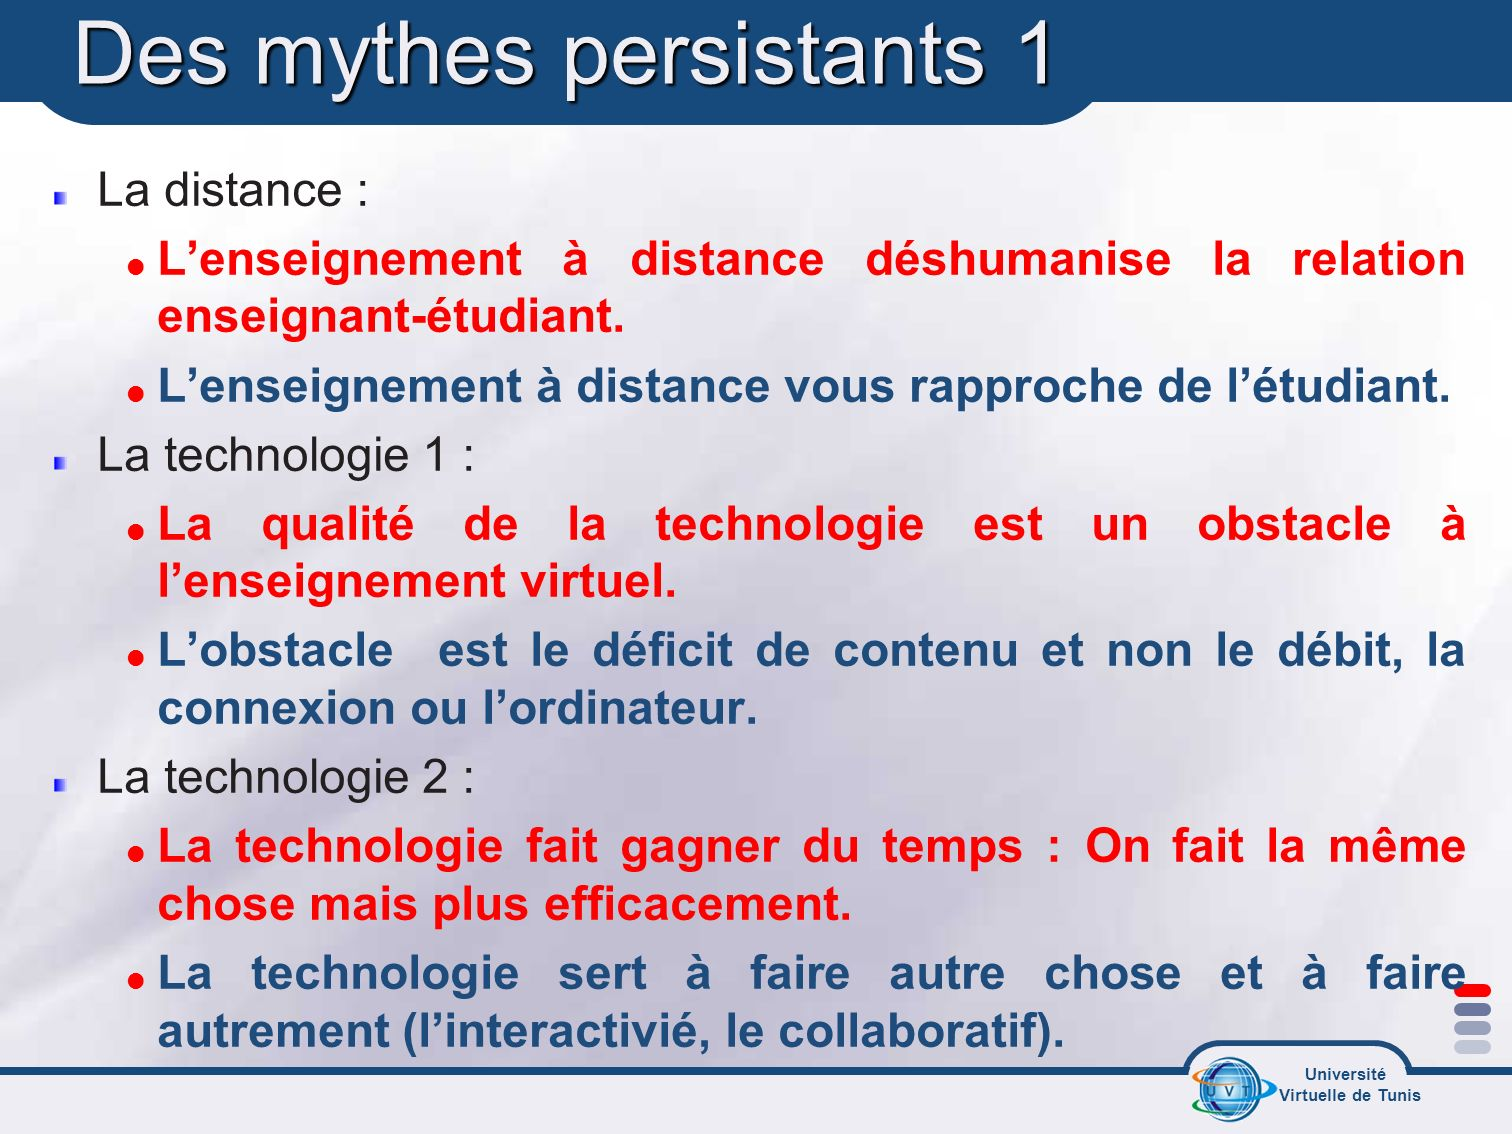 Des mythes persistants 1